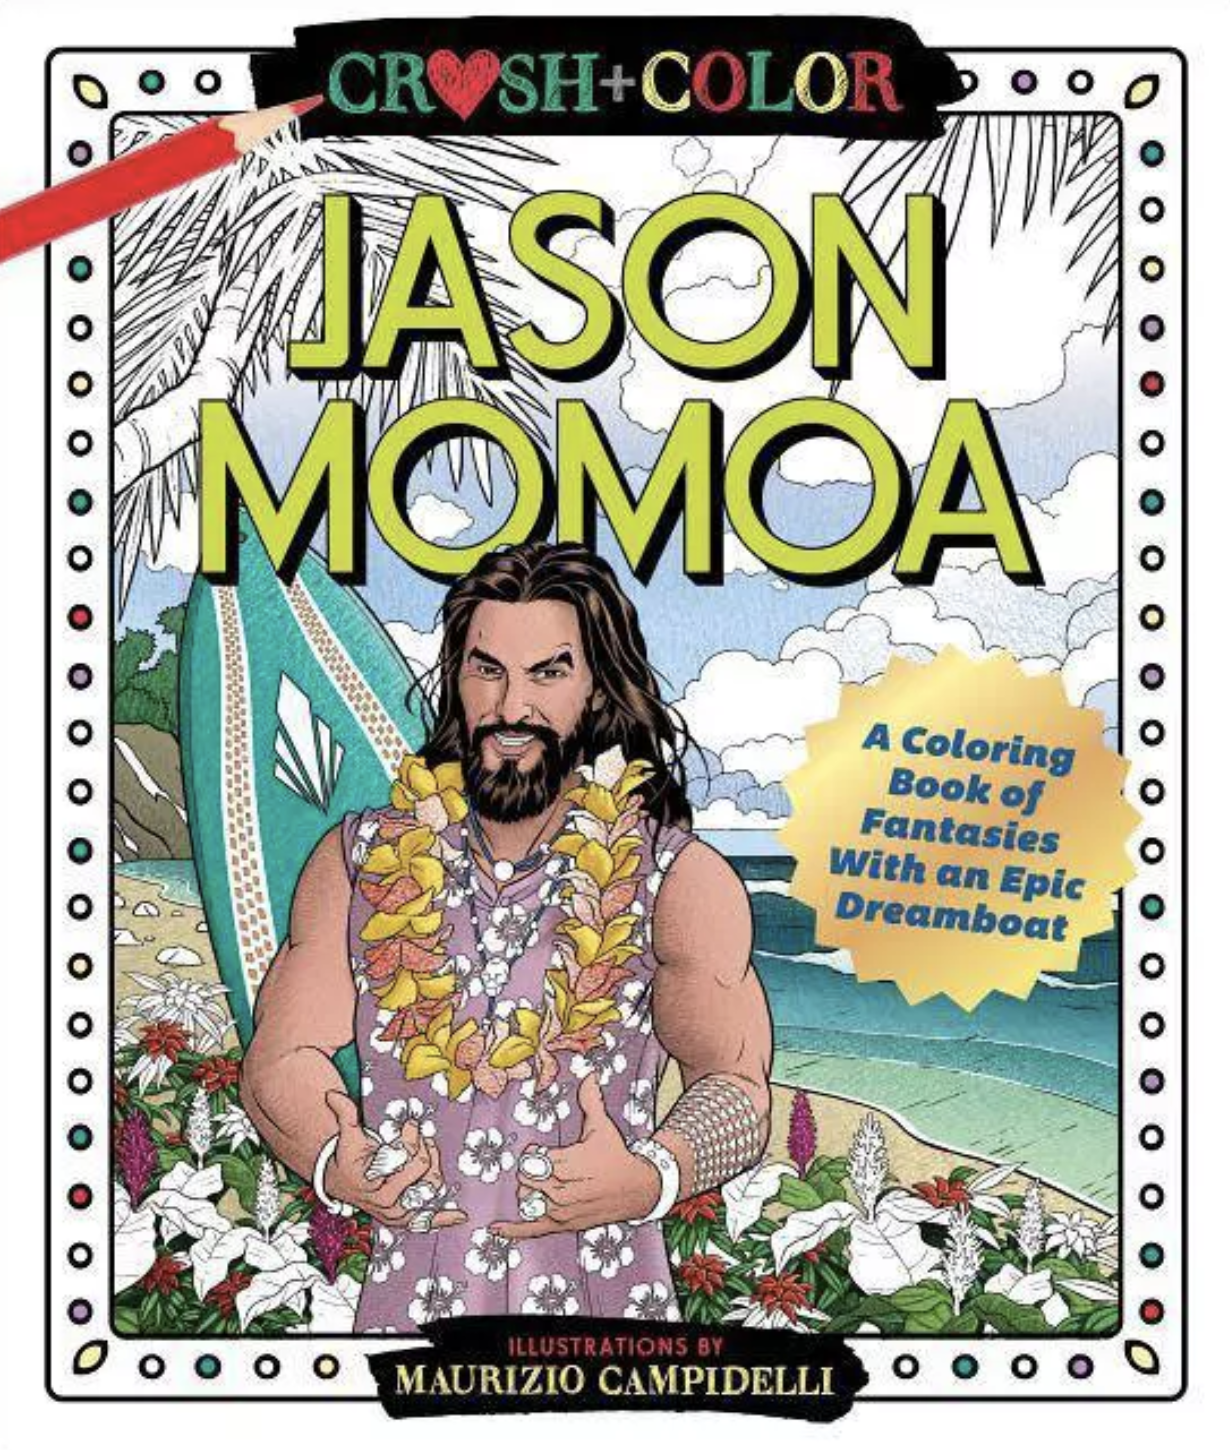 the coloring book with a colored in illustrated image of Jason Momoa wearing a lei and a sleeveless floral shirt